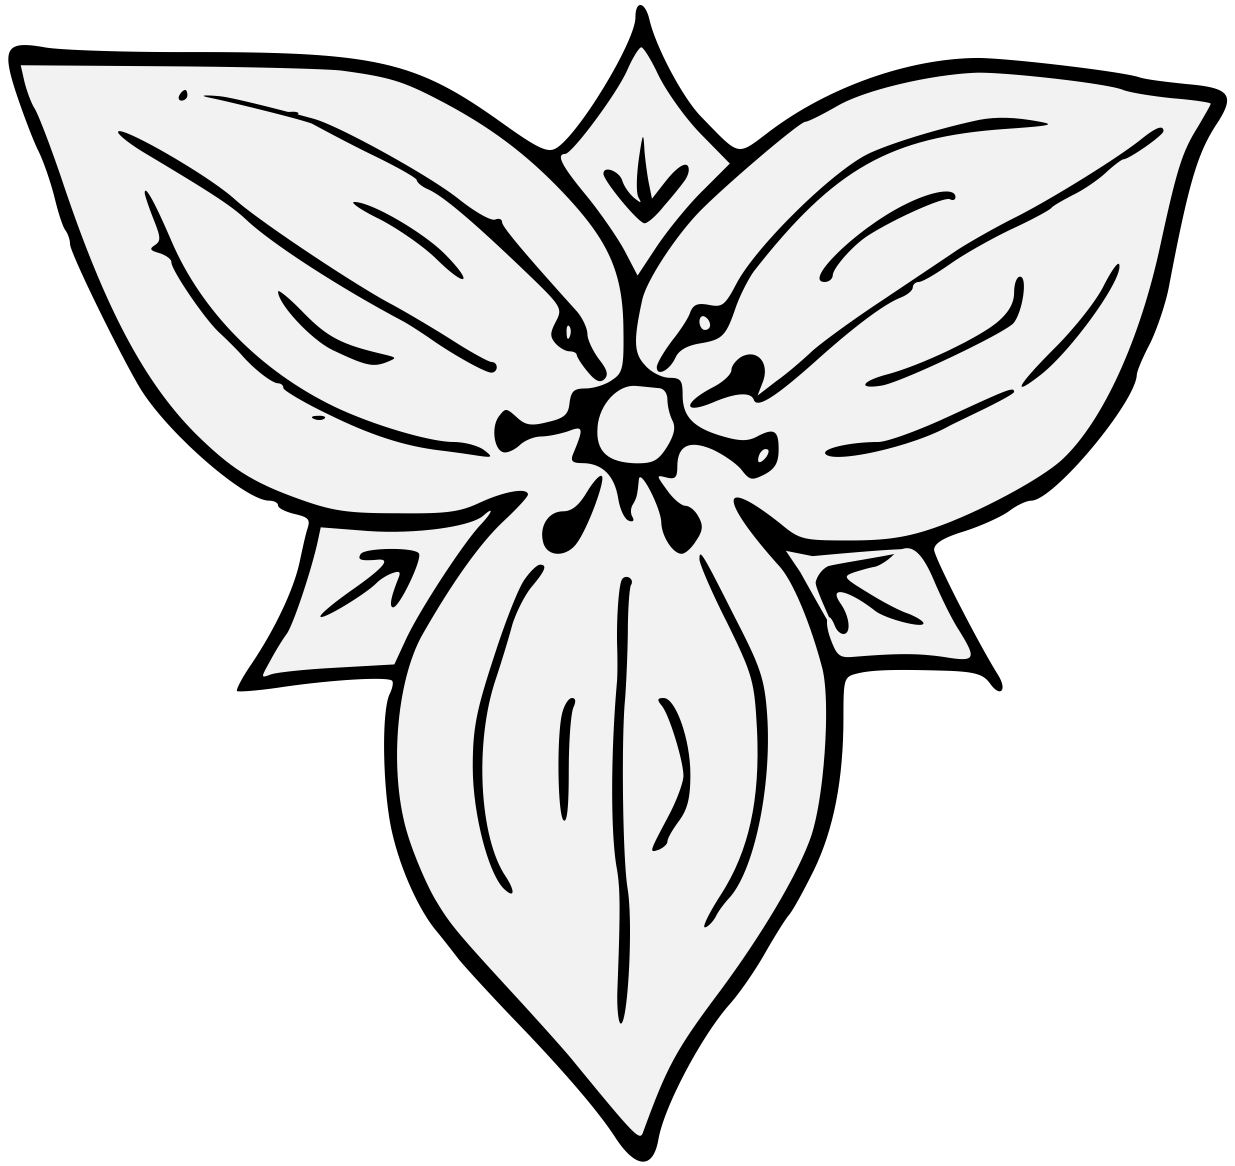 Montana state flower coloring page - Trillium Traceable Heraldic Art Wheat Coloring Pages Trillium Coloring Page